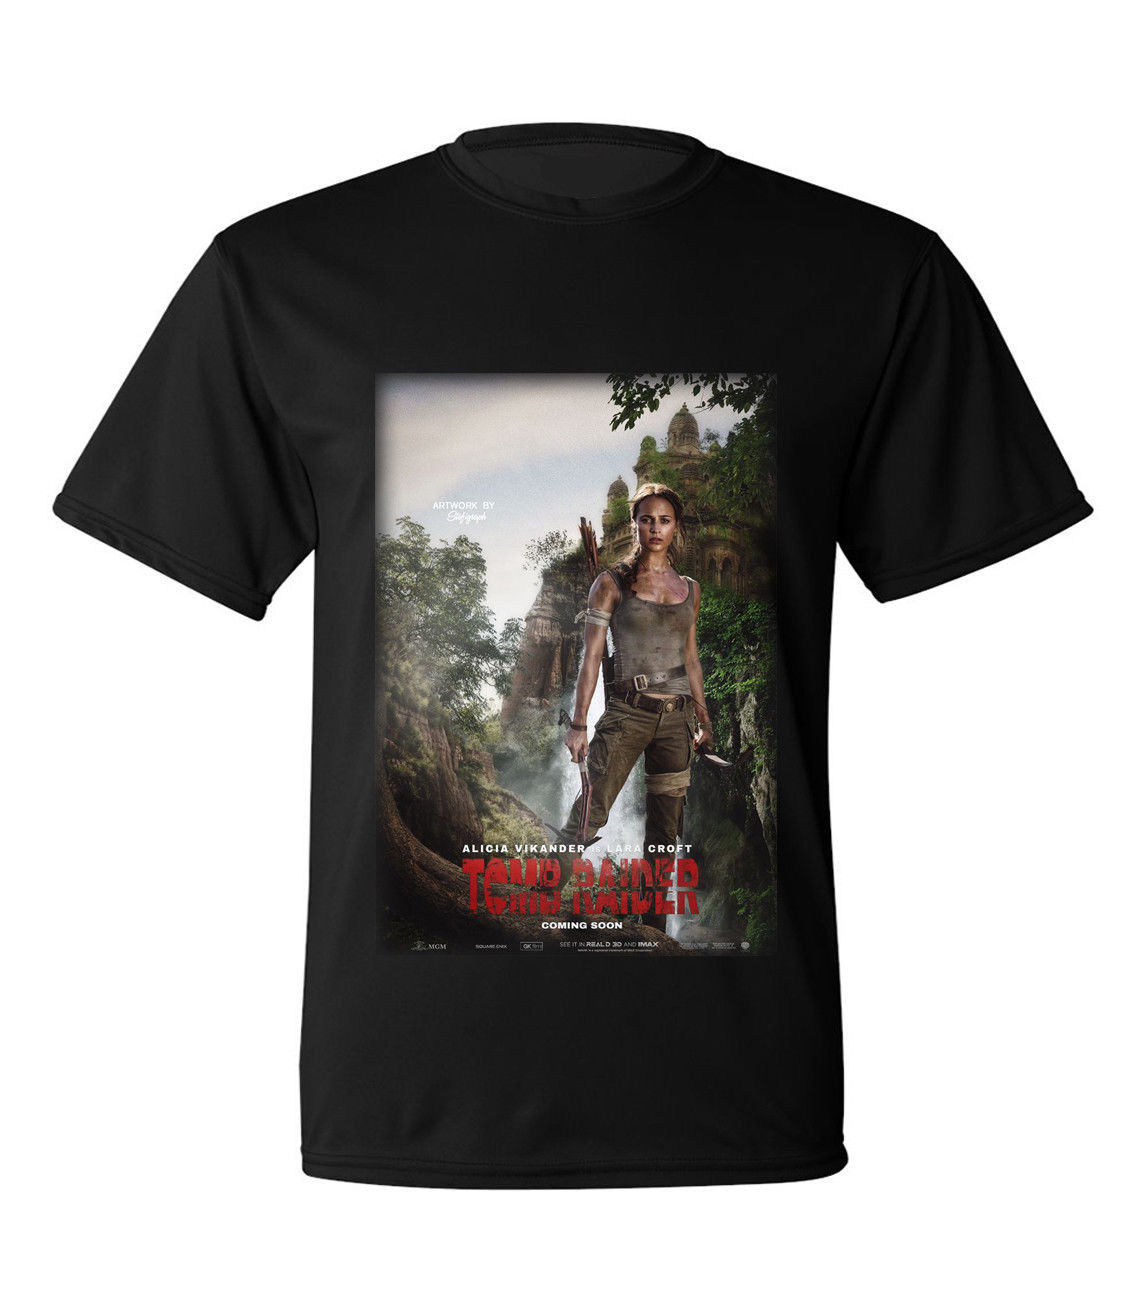 New Tomb Raider 2018 Movie Black T-shirt size S to 2XL